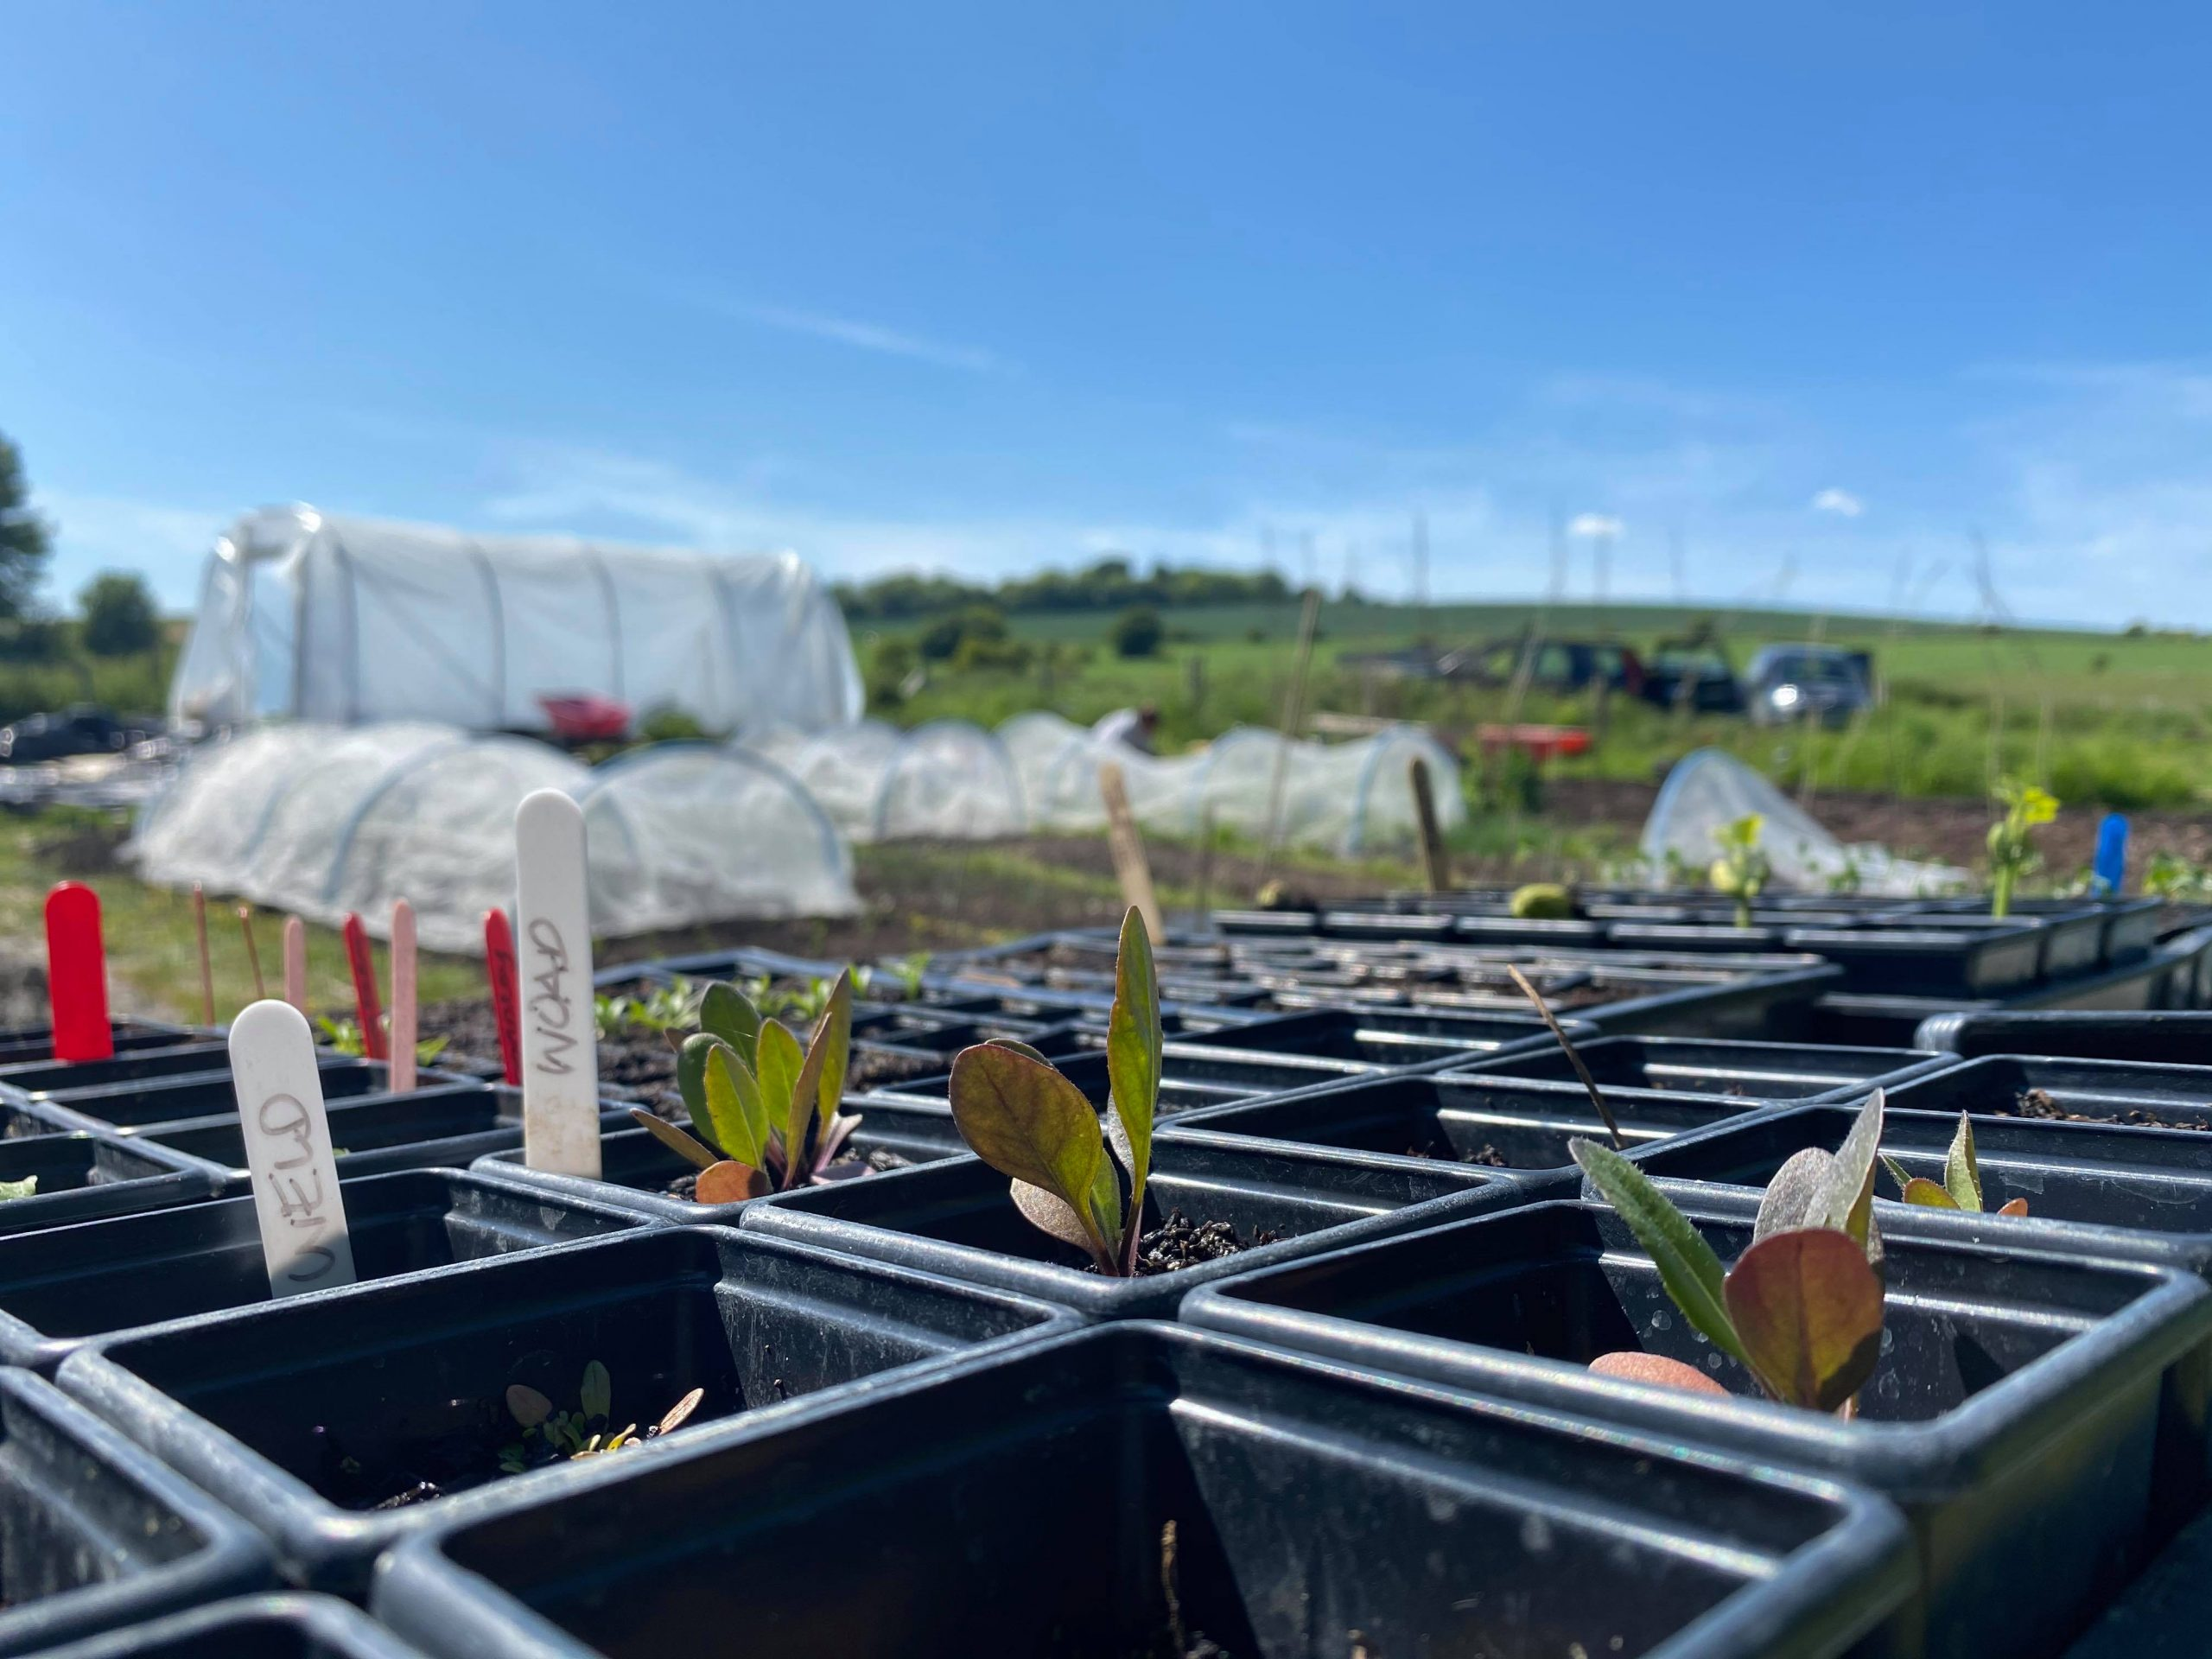 Chestnuts Farm seedlings